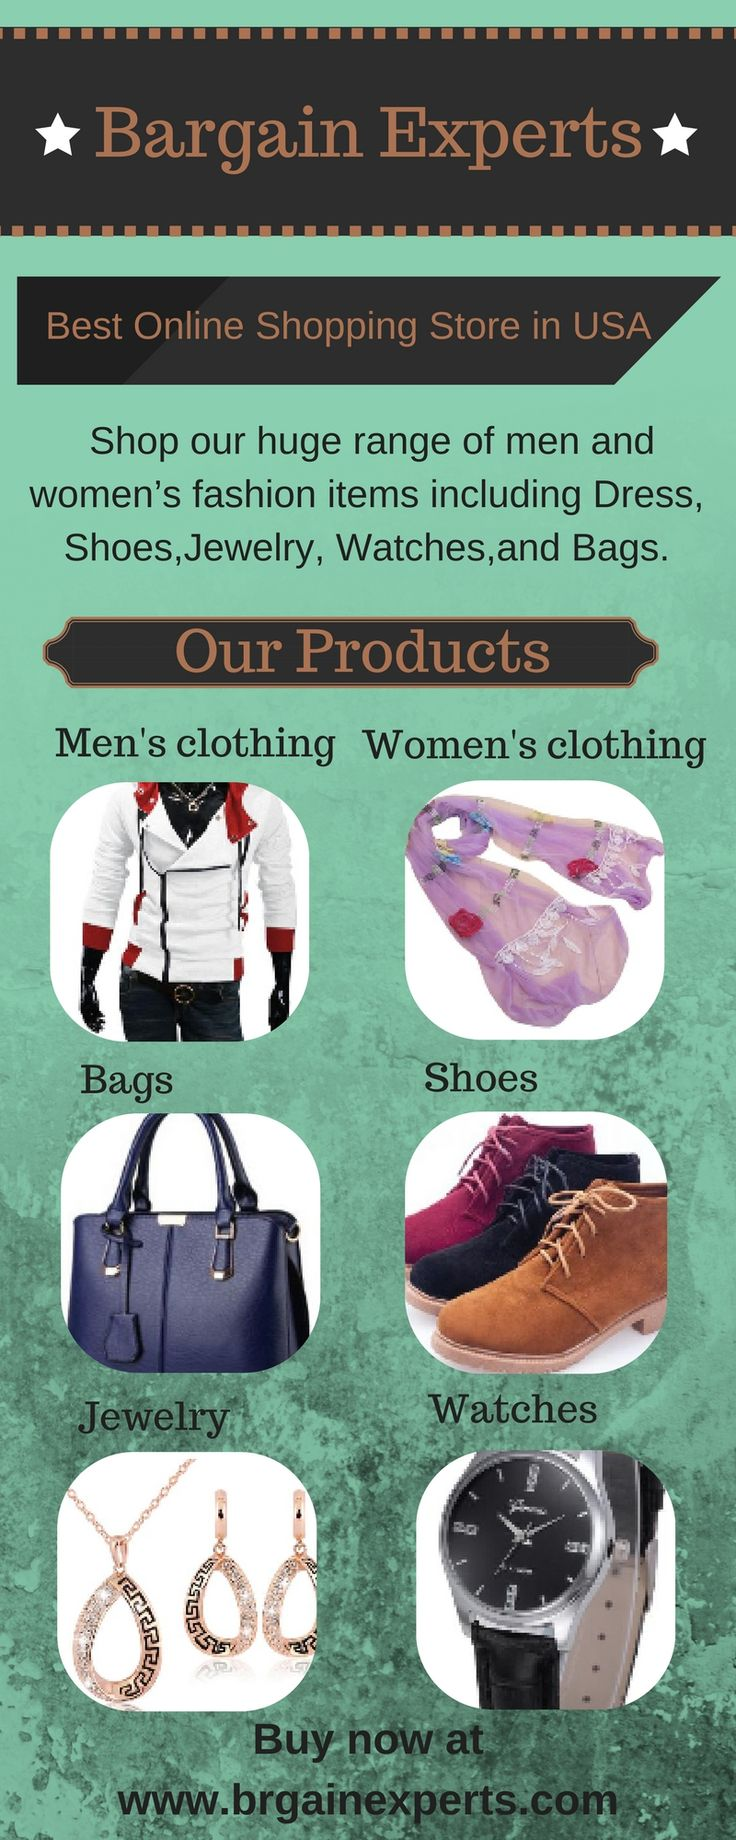 Bargain Experts gives you plethora of options for inexpensive women's clothes, men's designer clothes, artificial jewellery, branded watches, Most Comfortable Mens Shoes, Men's Messenger Bags, Women's Designer Bags. Shopping here is so easy and fun with wide range of products at value for money prices.